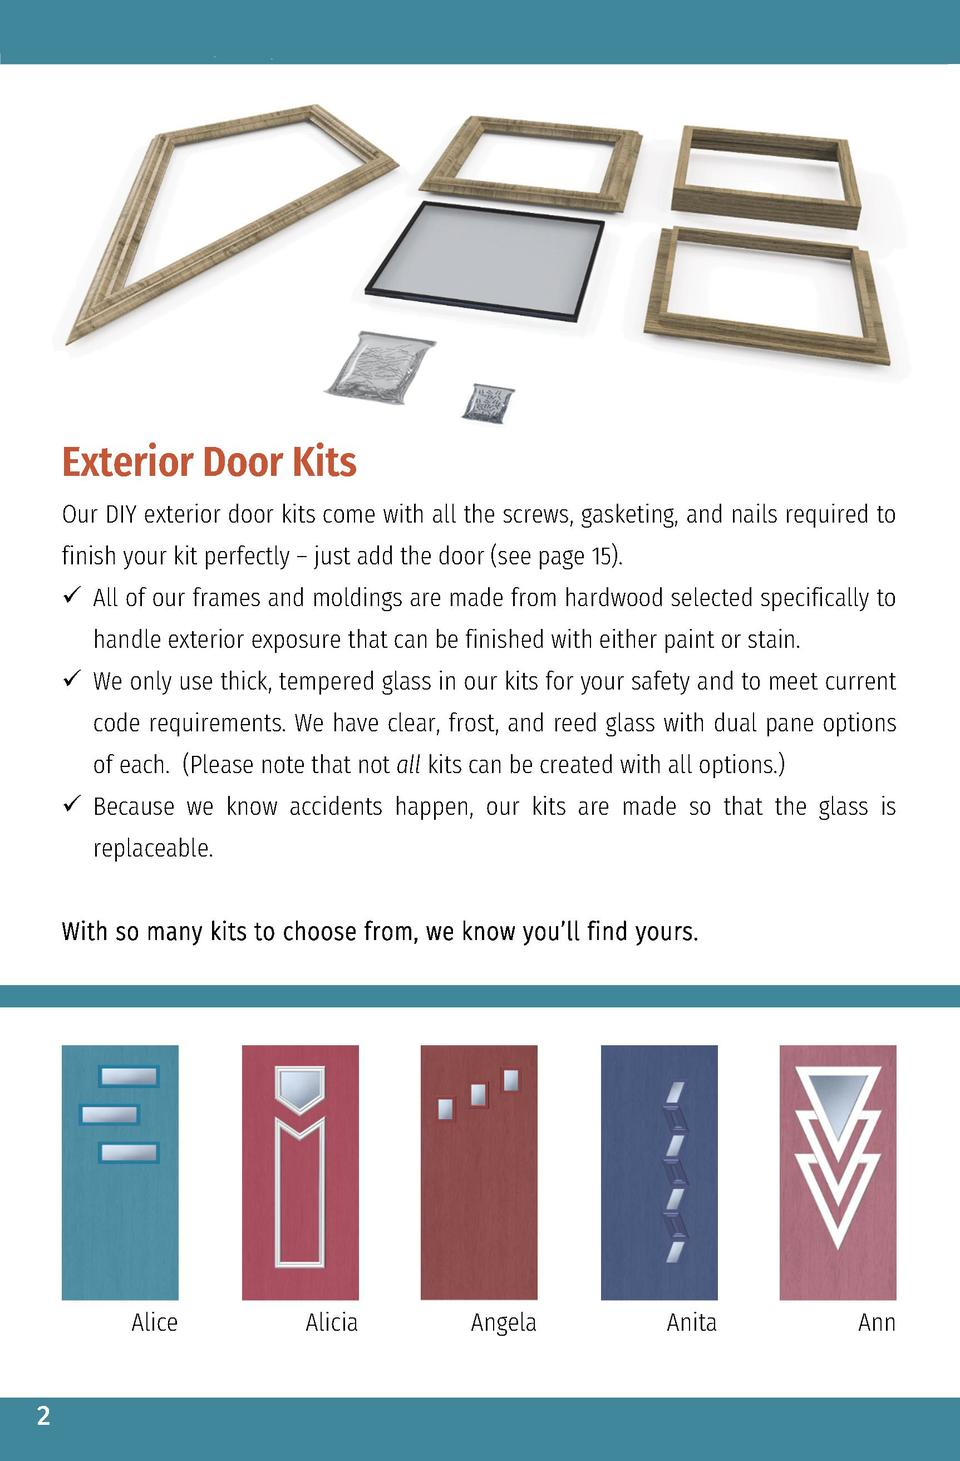 Exterior Door Kits Our DIY exterior door kits come with all the screws, gasketing, and nails required to finish your kit p...